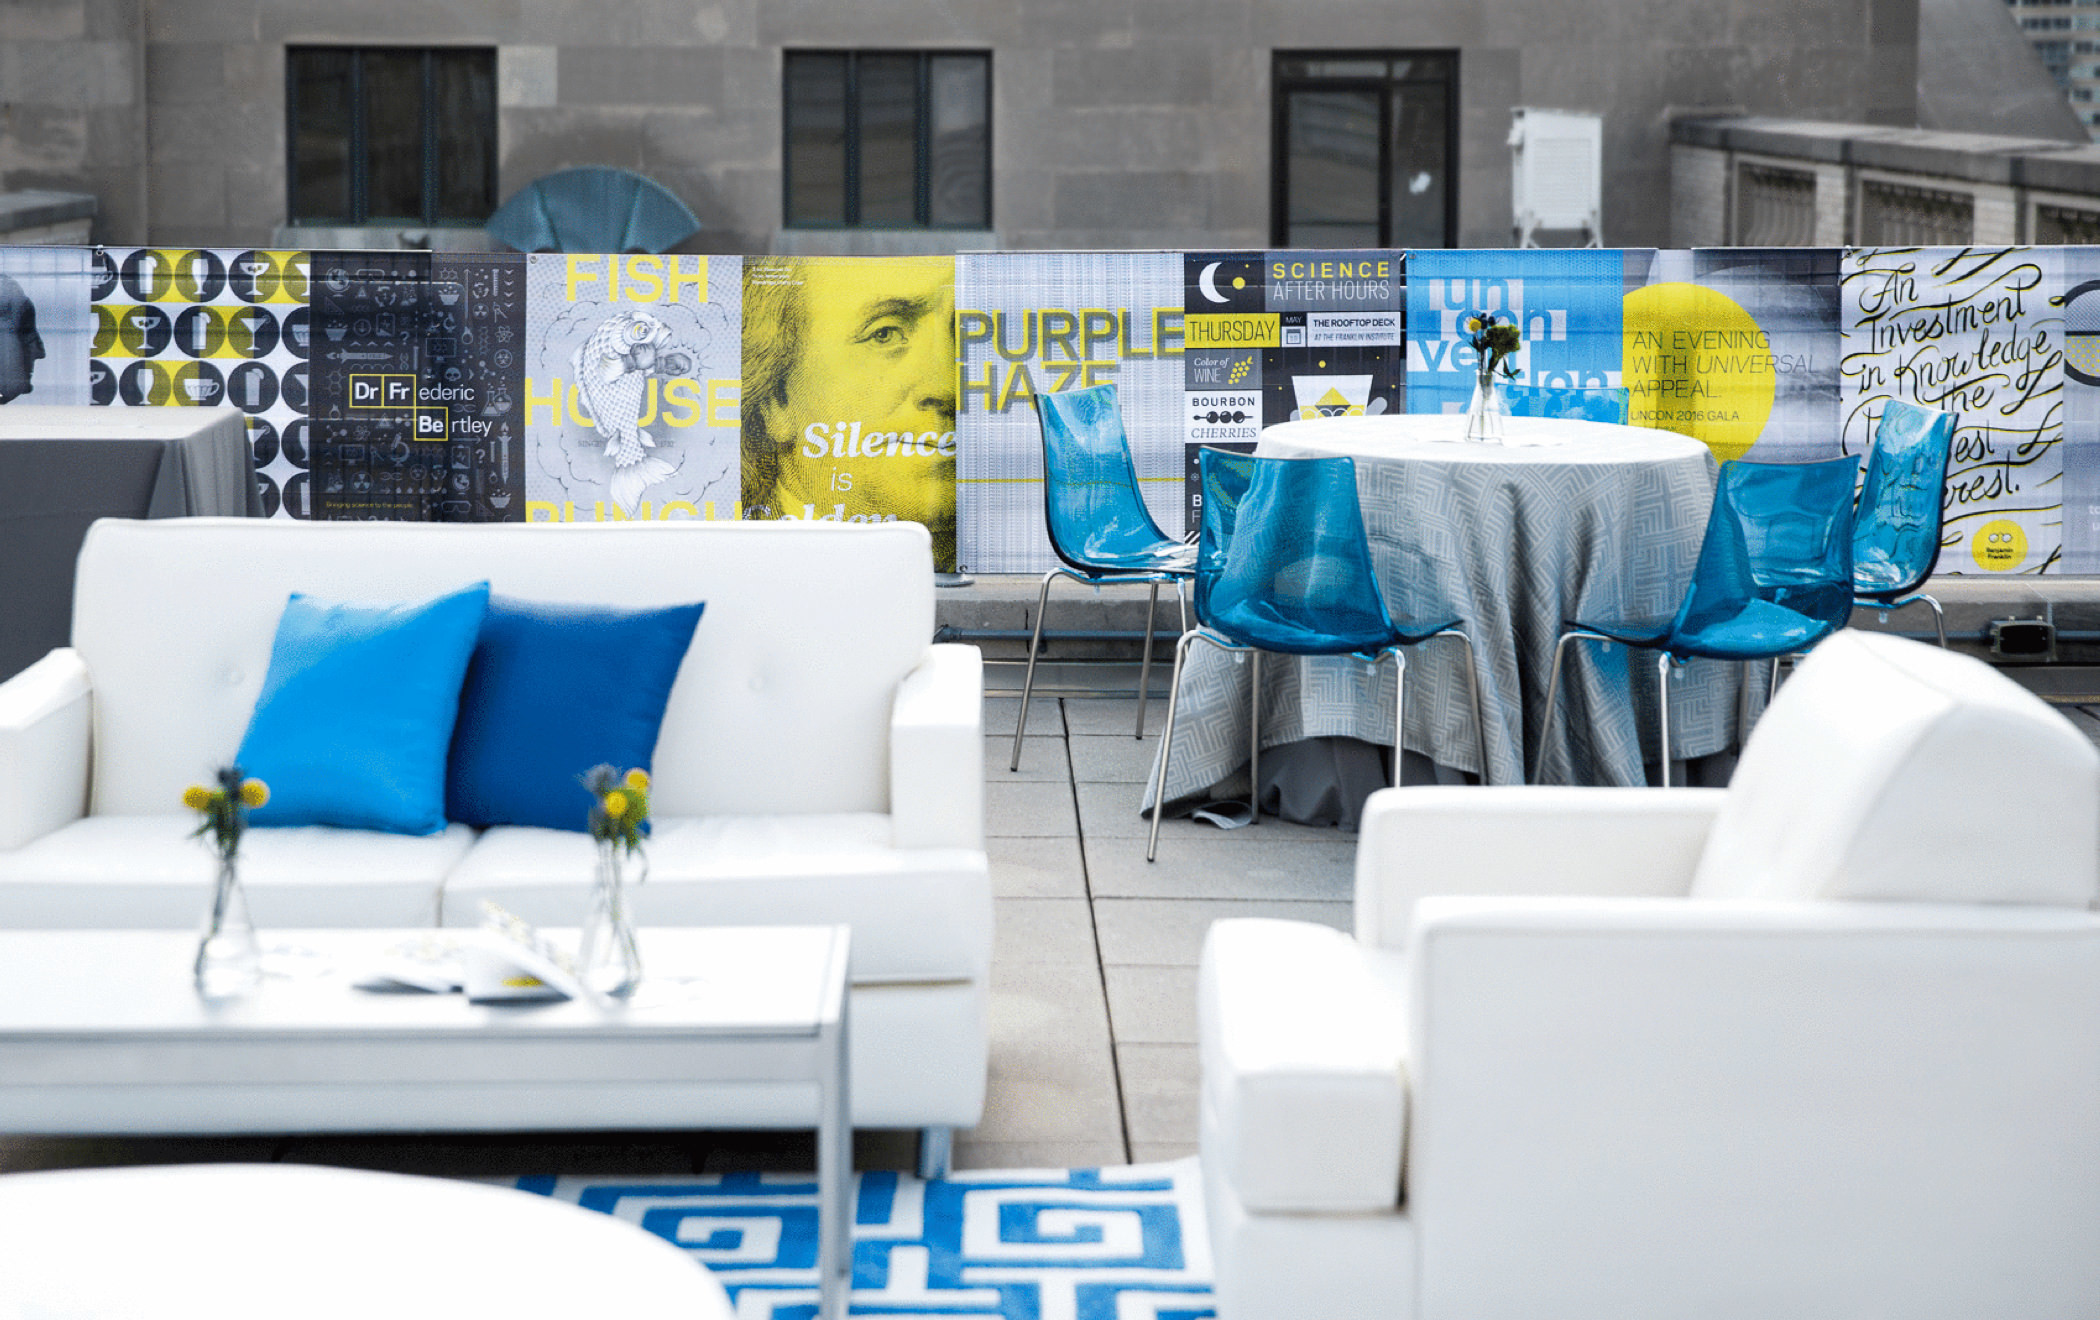 A decorated rooftop reception area at the 2016 KCG Uncon client event rimmed with event posters.